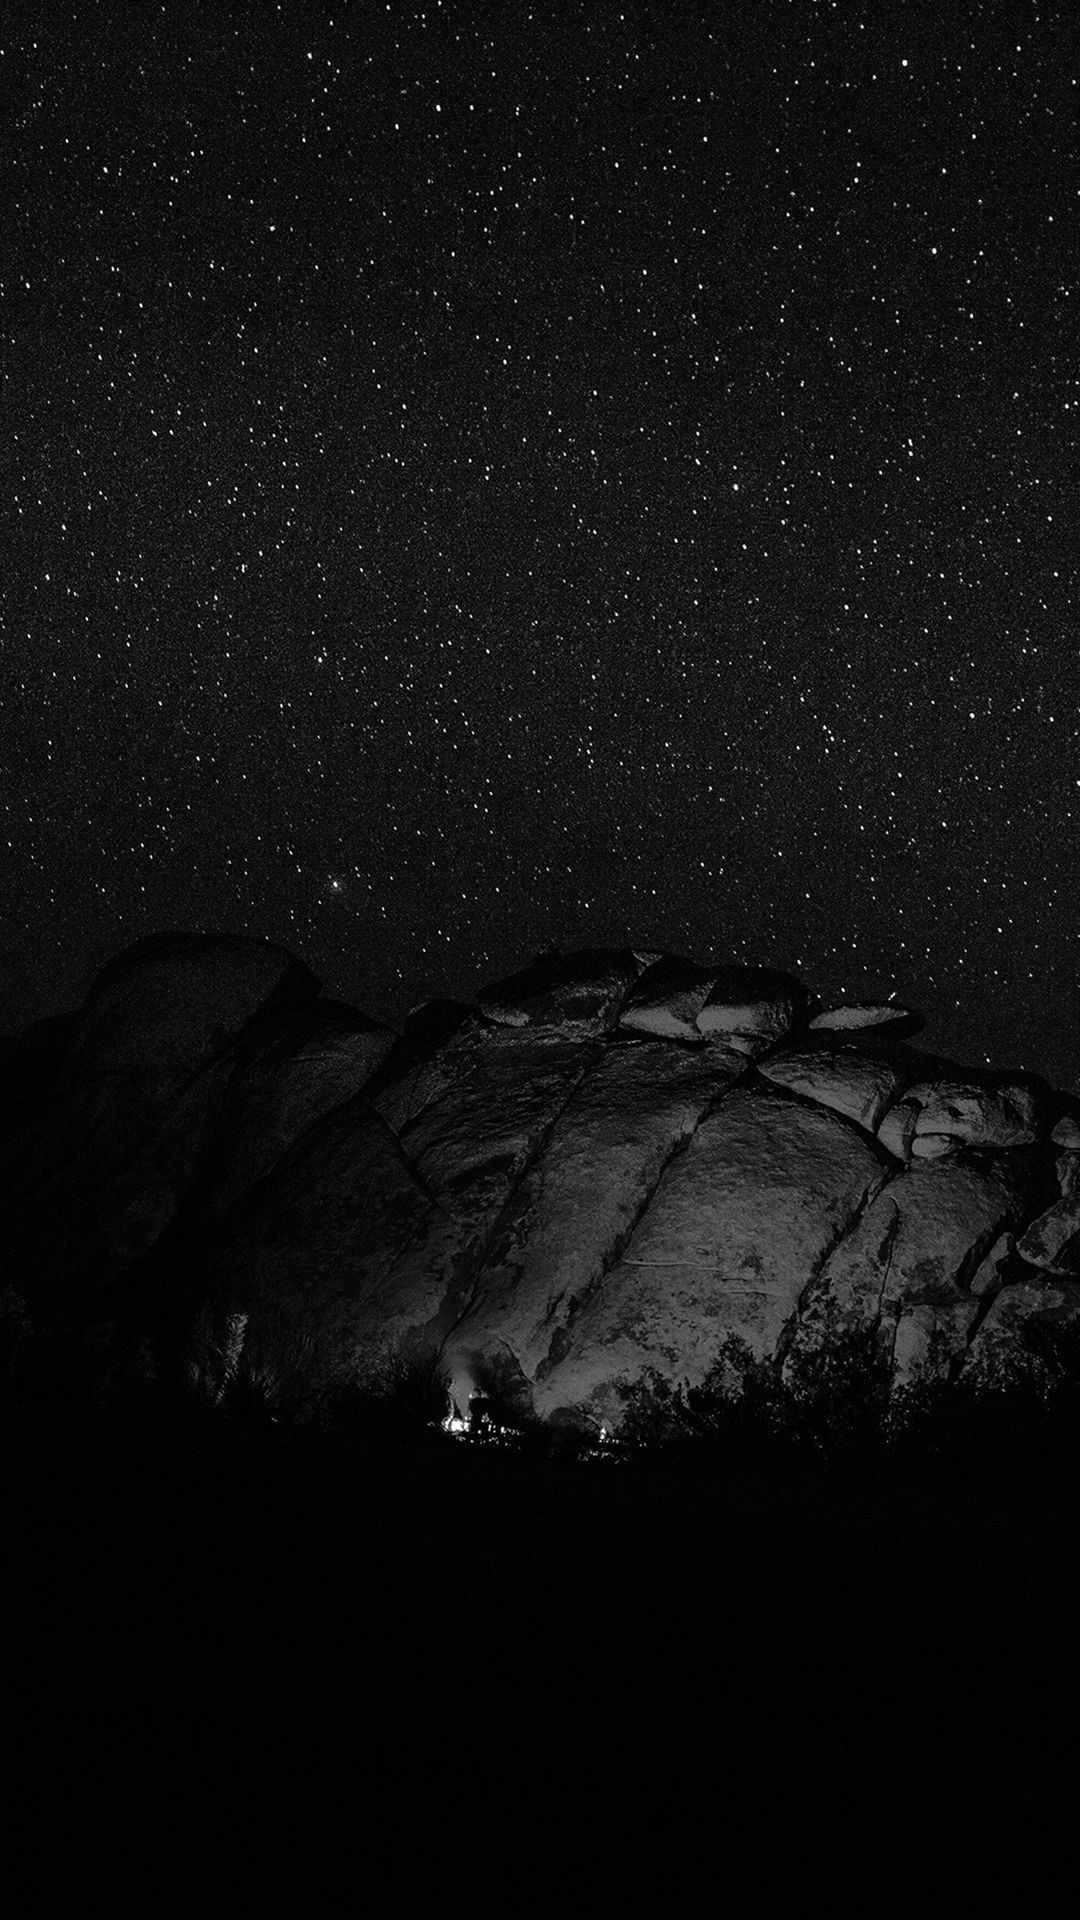 Mystery Rock Night Sky Star Nature Dark Iphone 6 Wallpaper Dark Wallpaper Night Sky Stars Download Wallpaper Hd